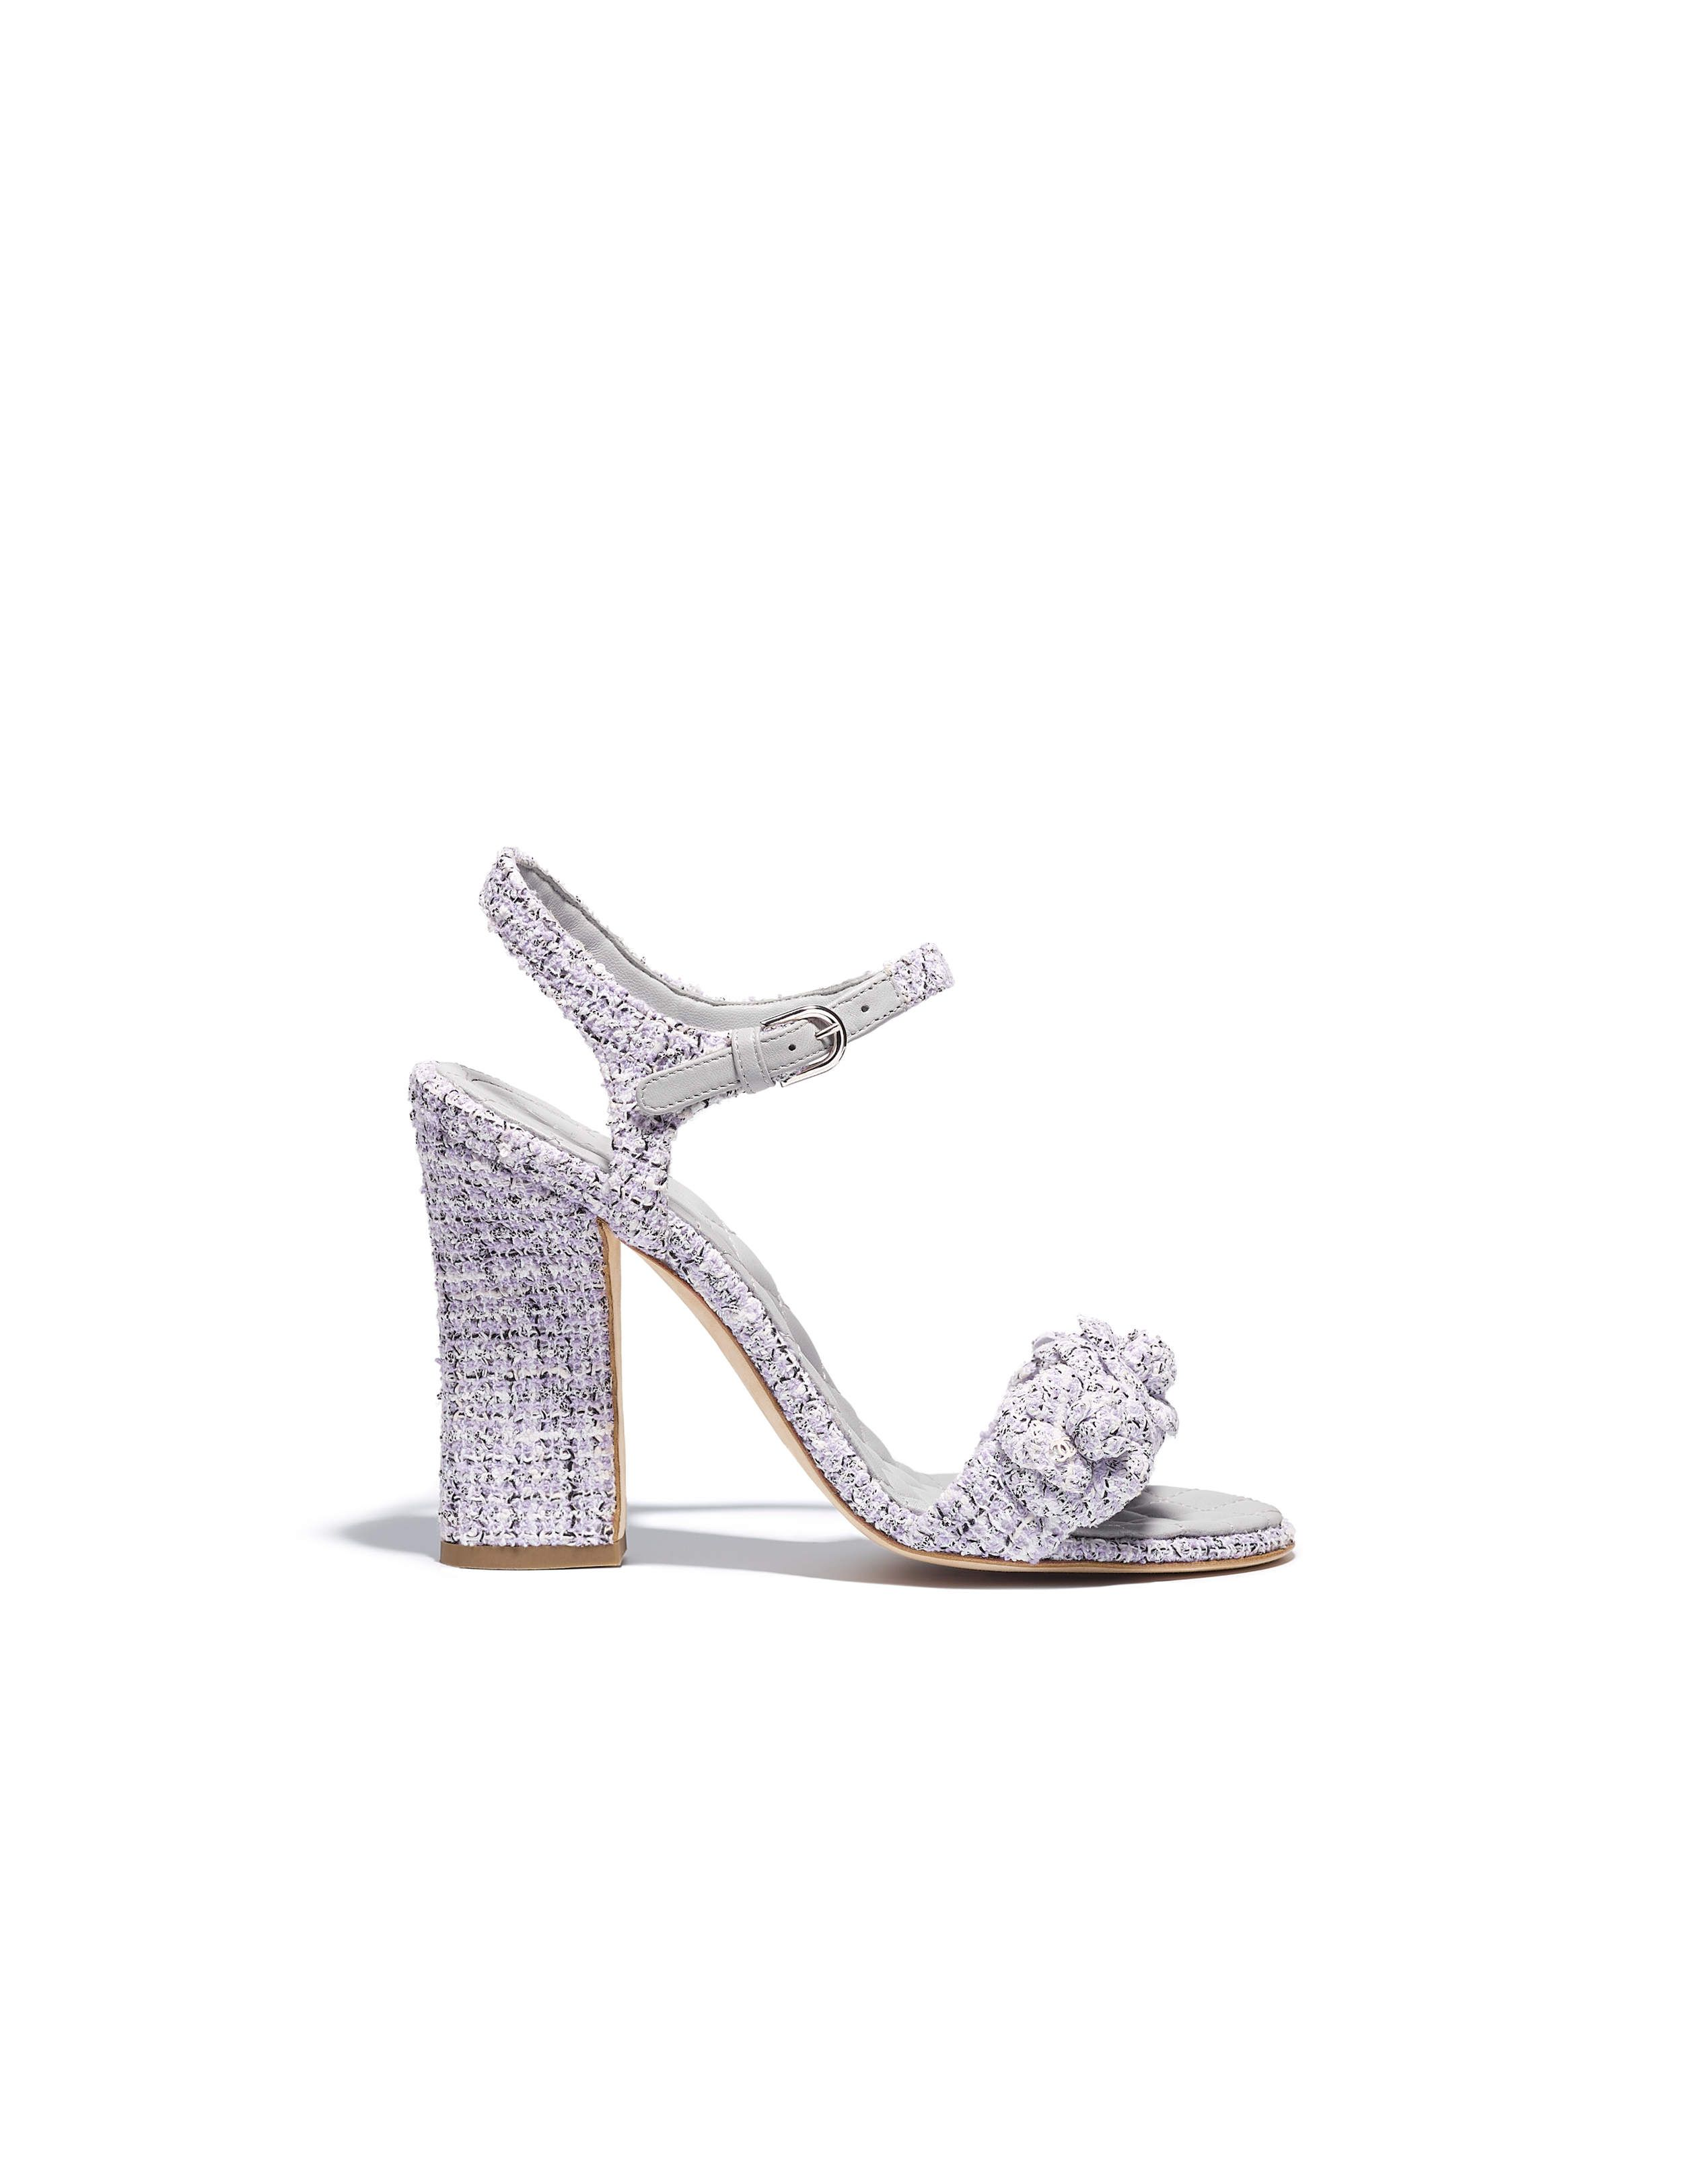 The latest Shoes collections on the